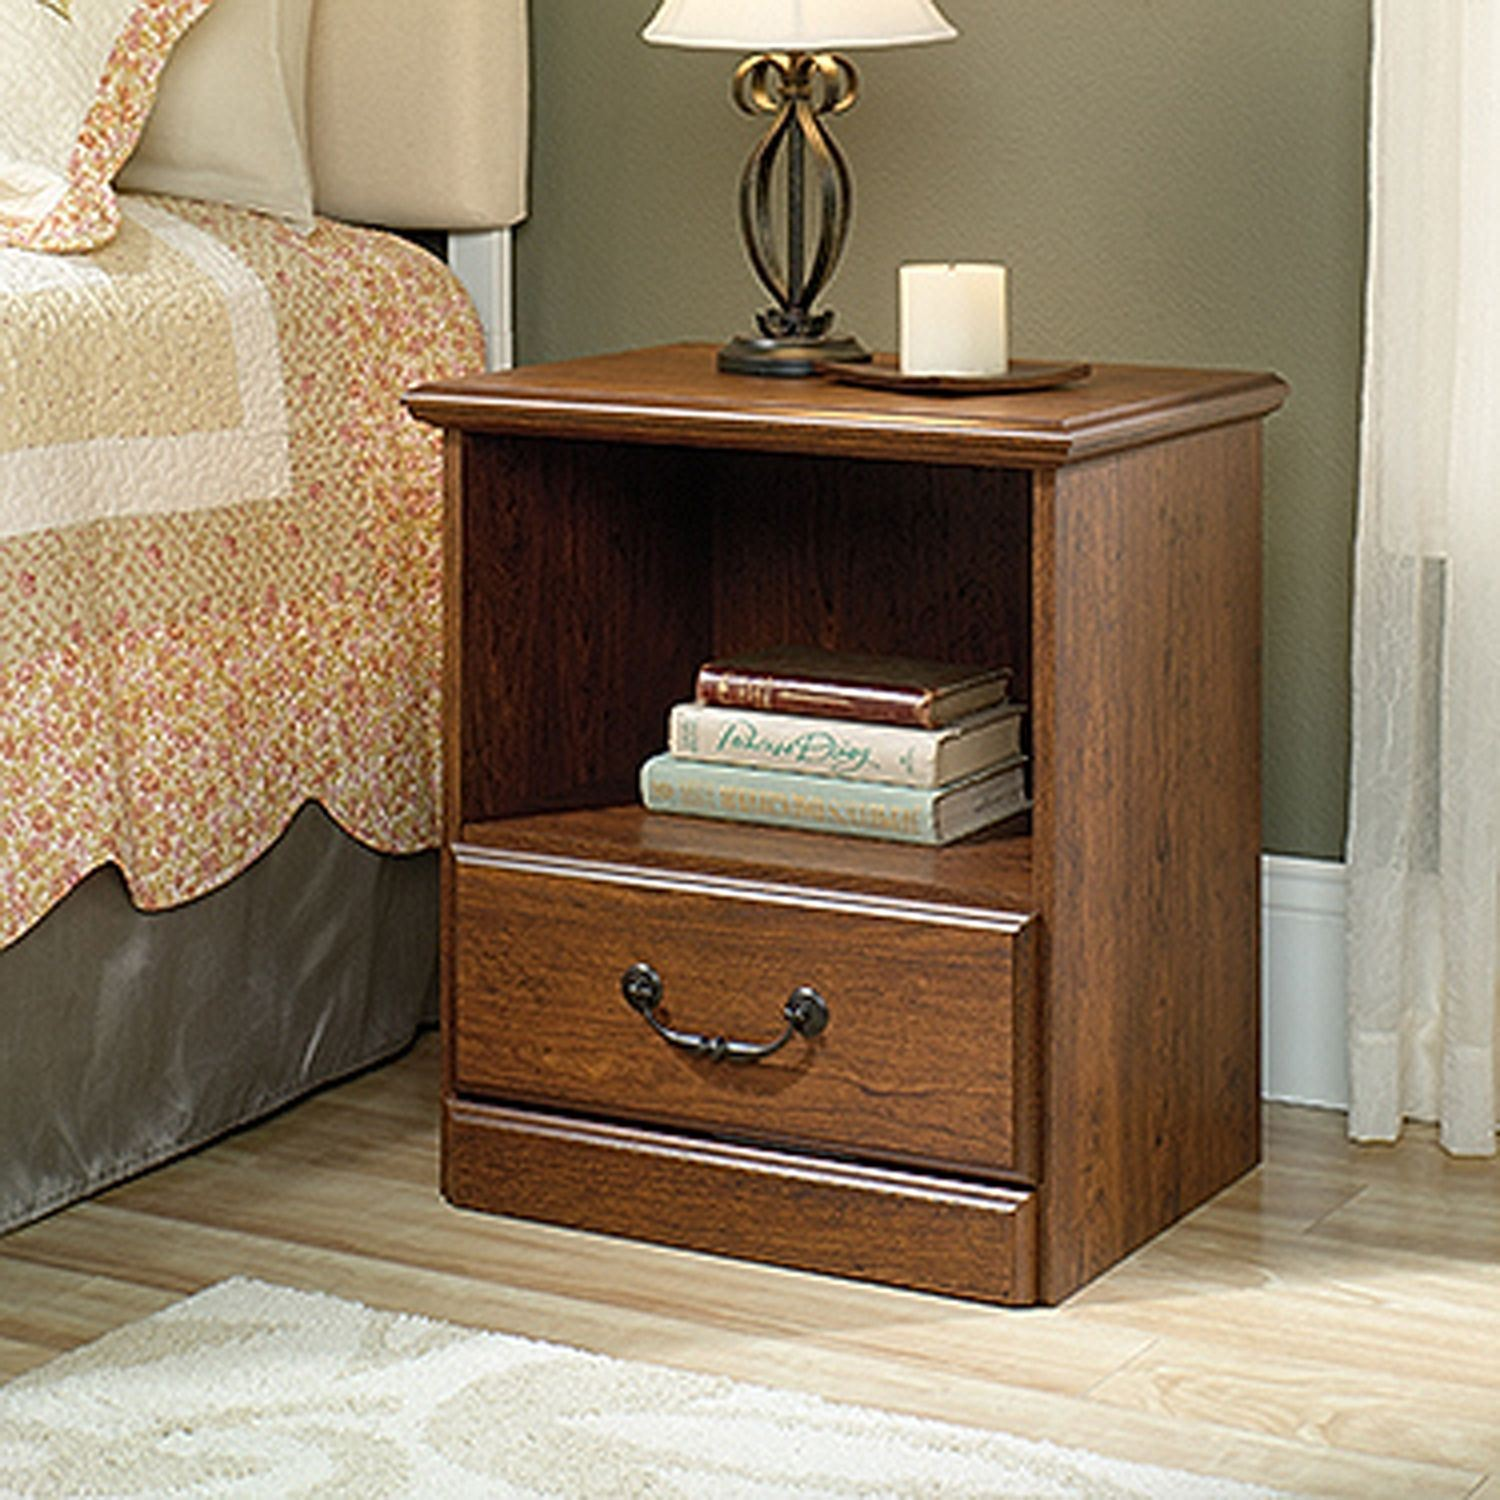 orchard hills night stand milled cherry sauder end table ture ashley furniture dining set with bench oak and chairs round glass top bedside who sells universal whalen llc